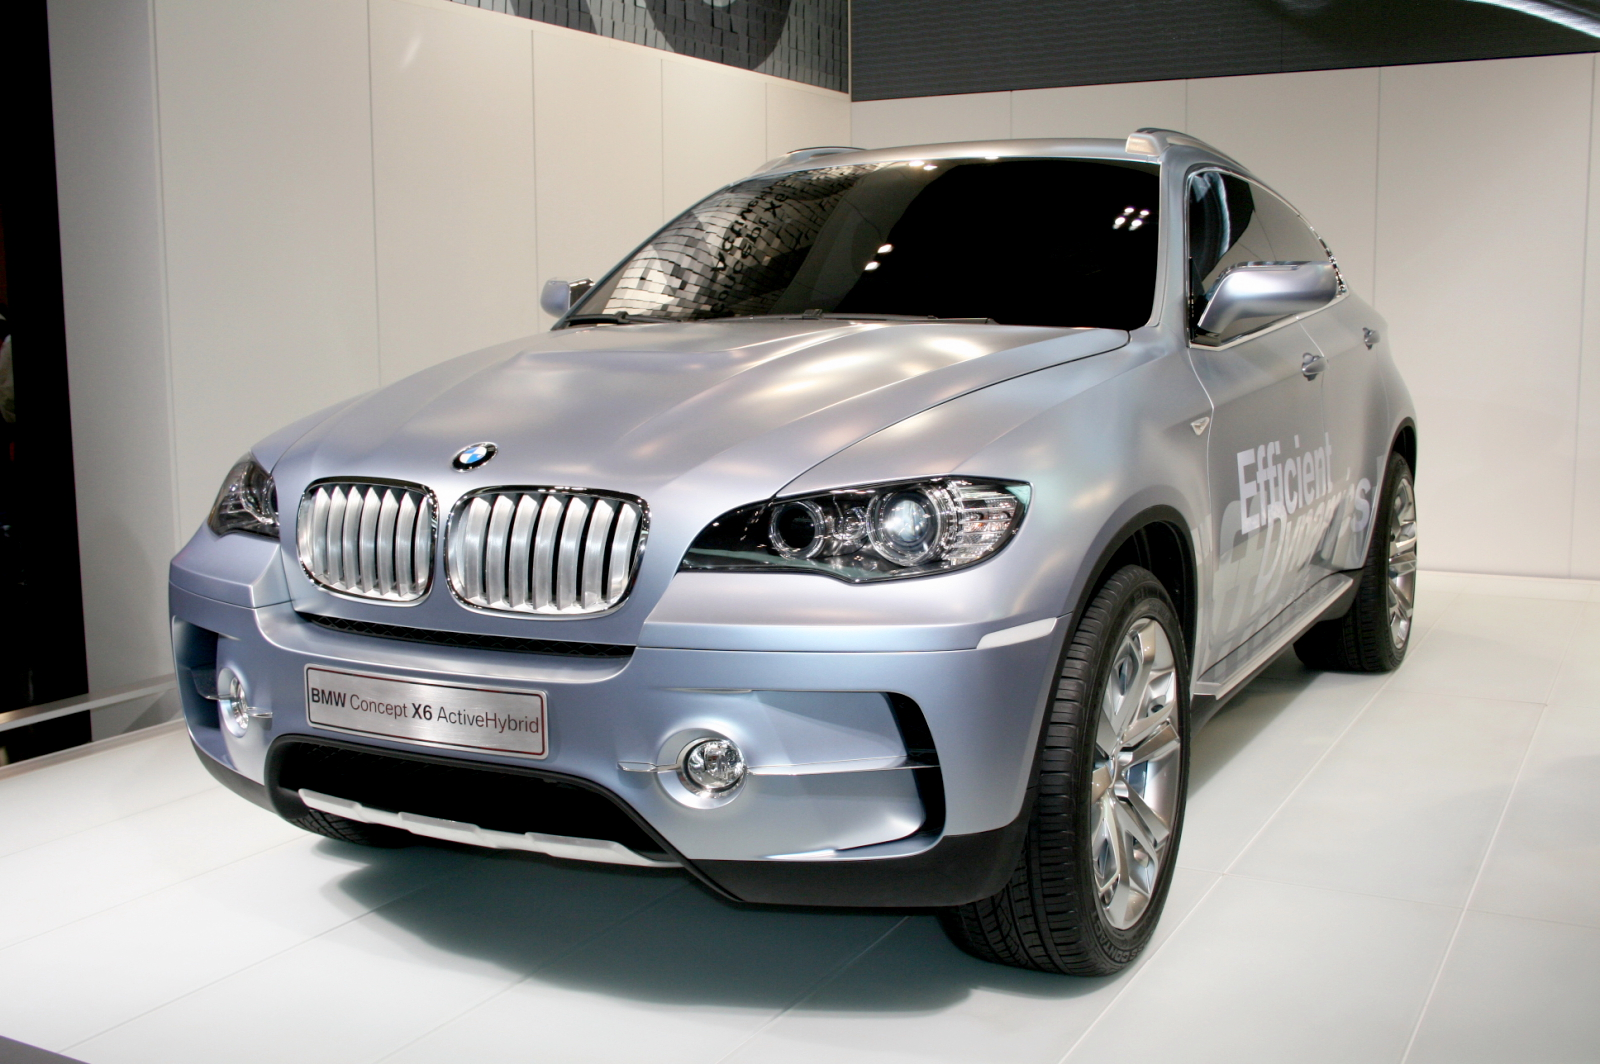 File:BMW Concept X6 ActiveHybrid.JPG - Wikimedia Commons